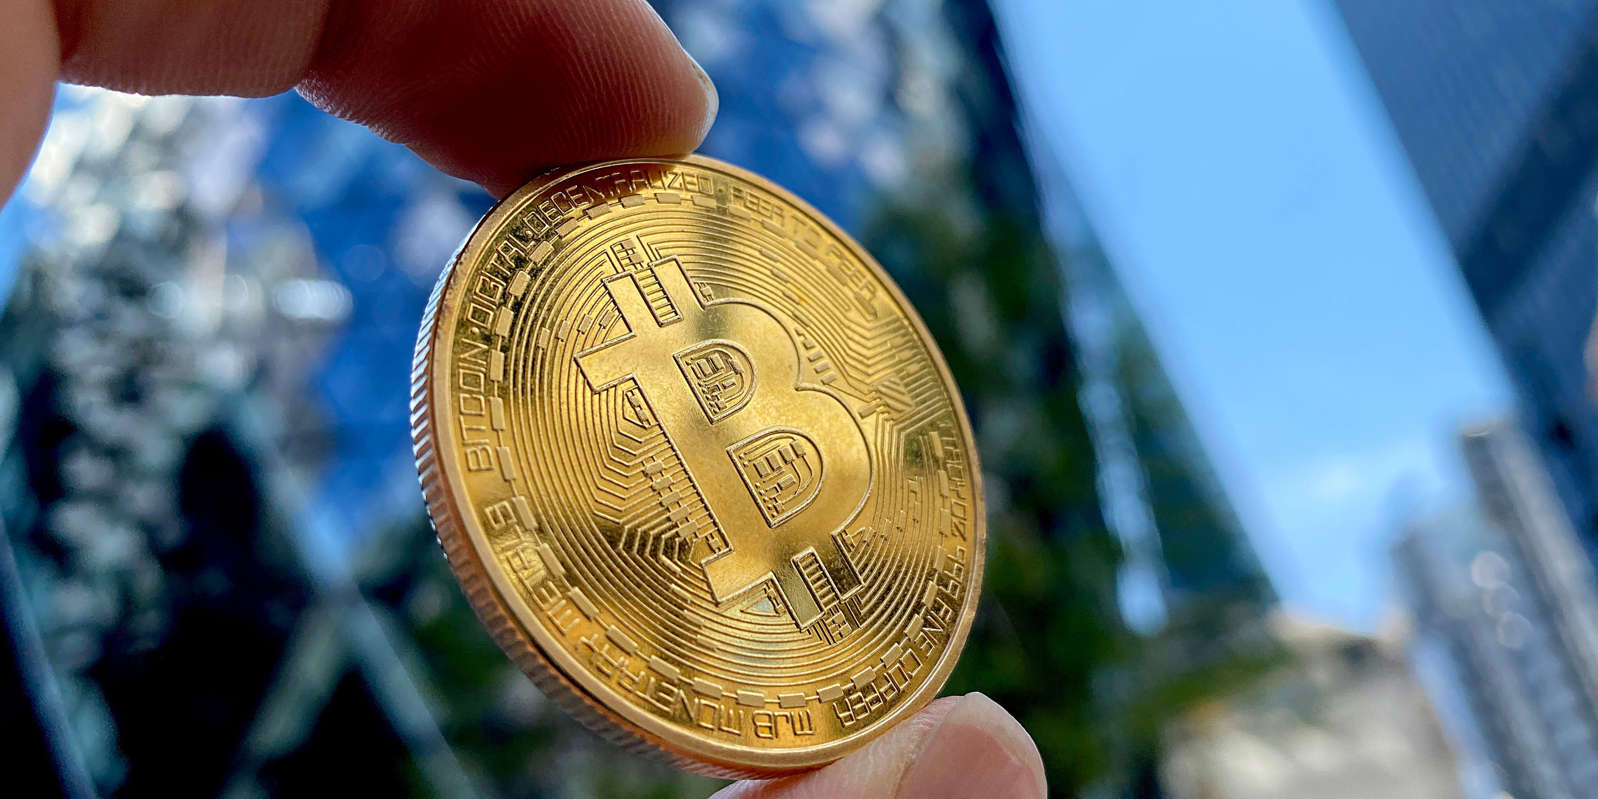 a close up of a hand: Bitcoin. Edward Smith/Getty Images